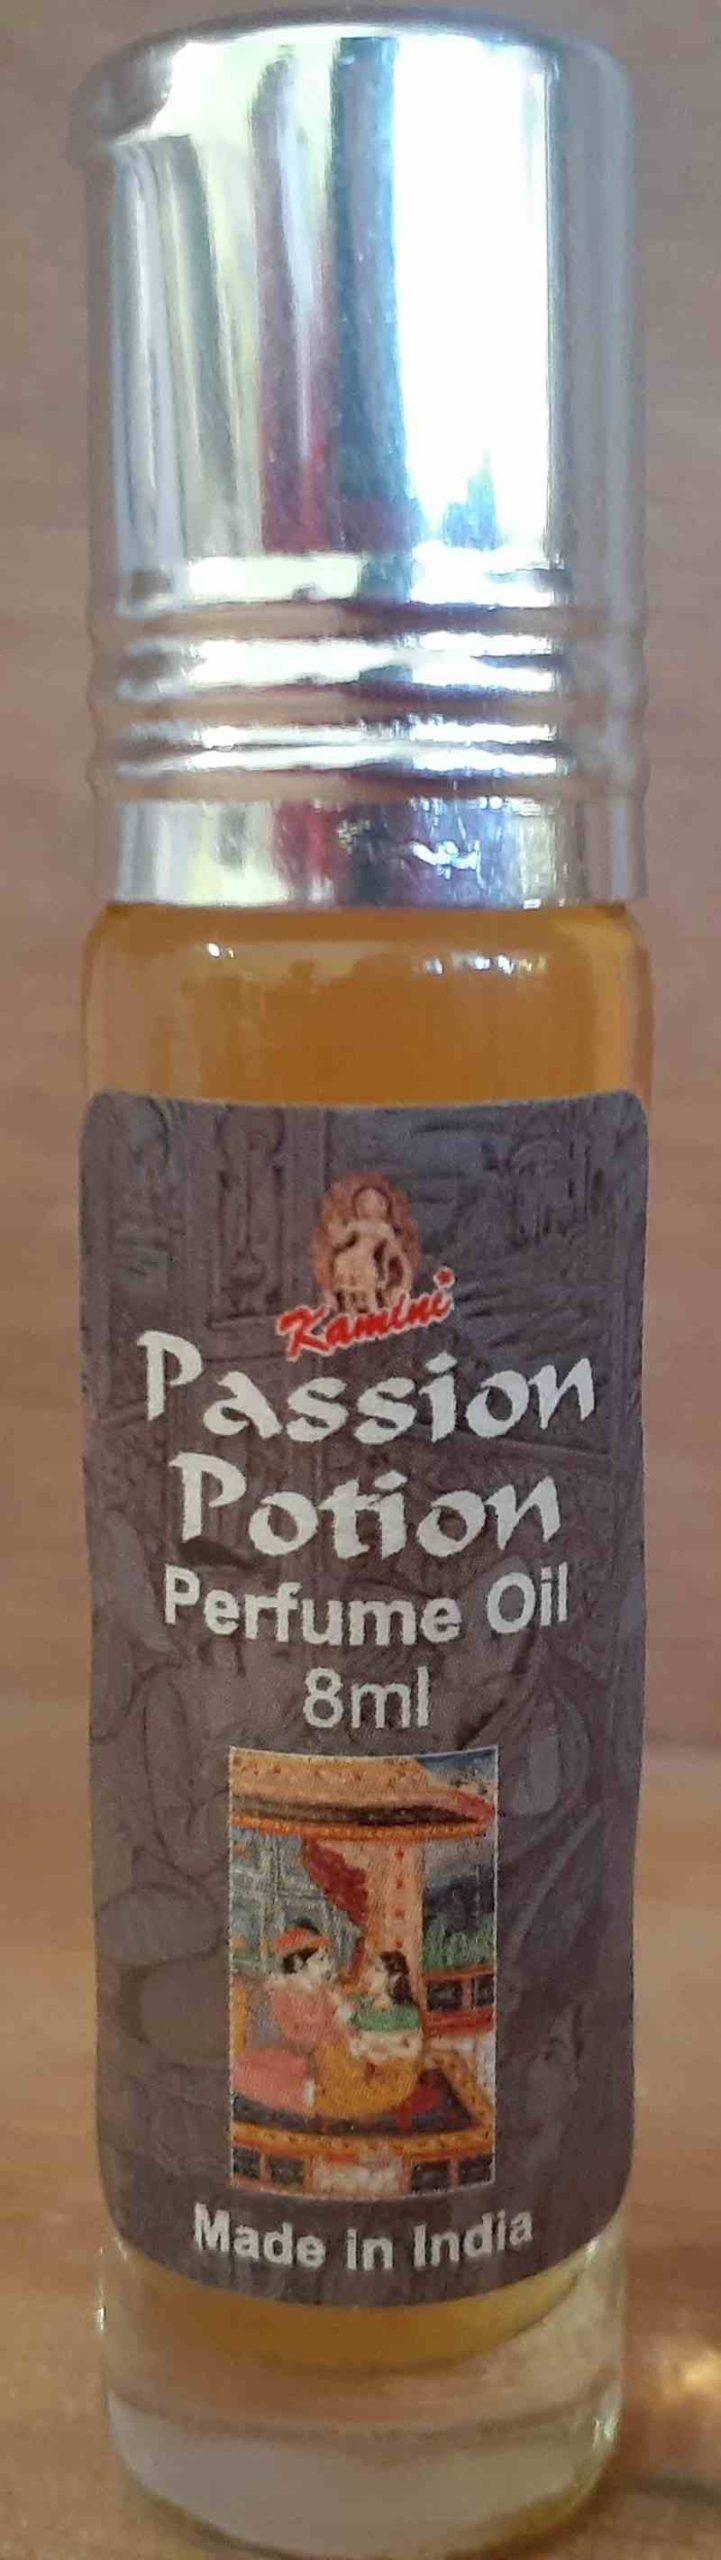 KARNINI PERFUME OIL PASSION POTION 8ML